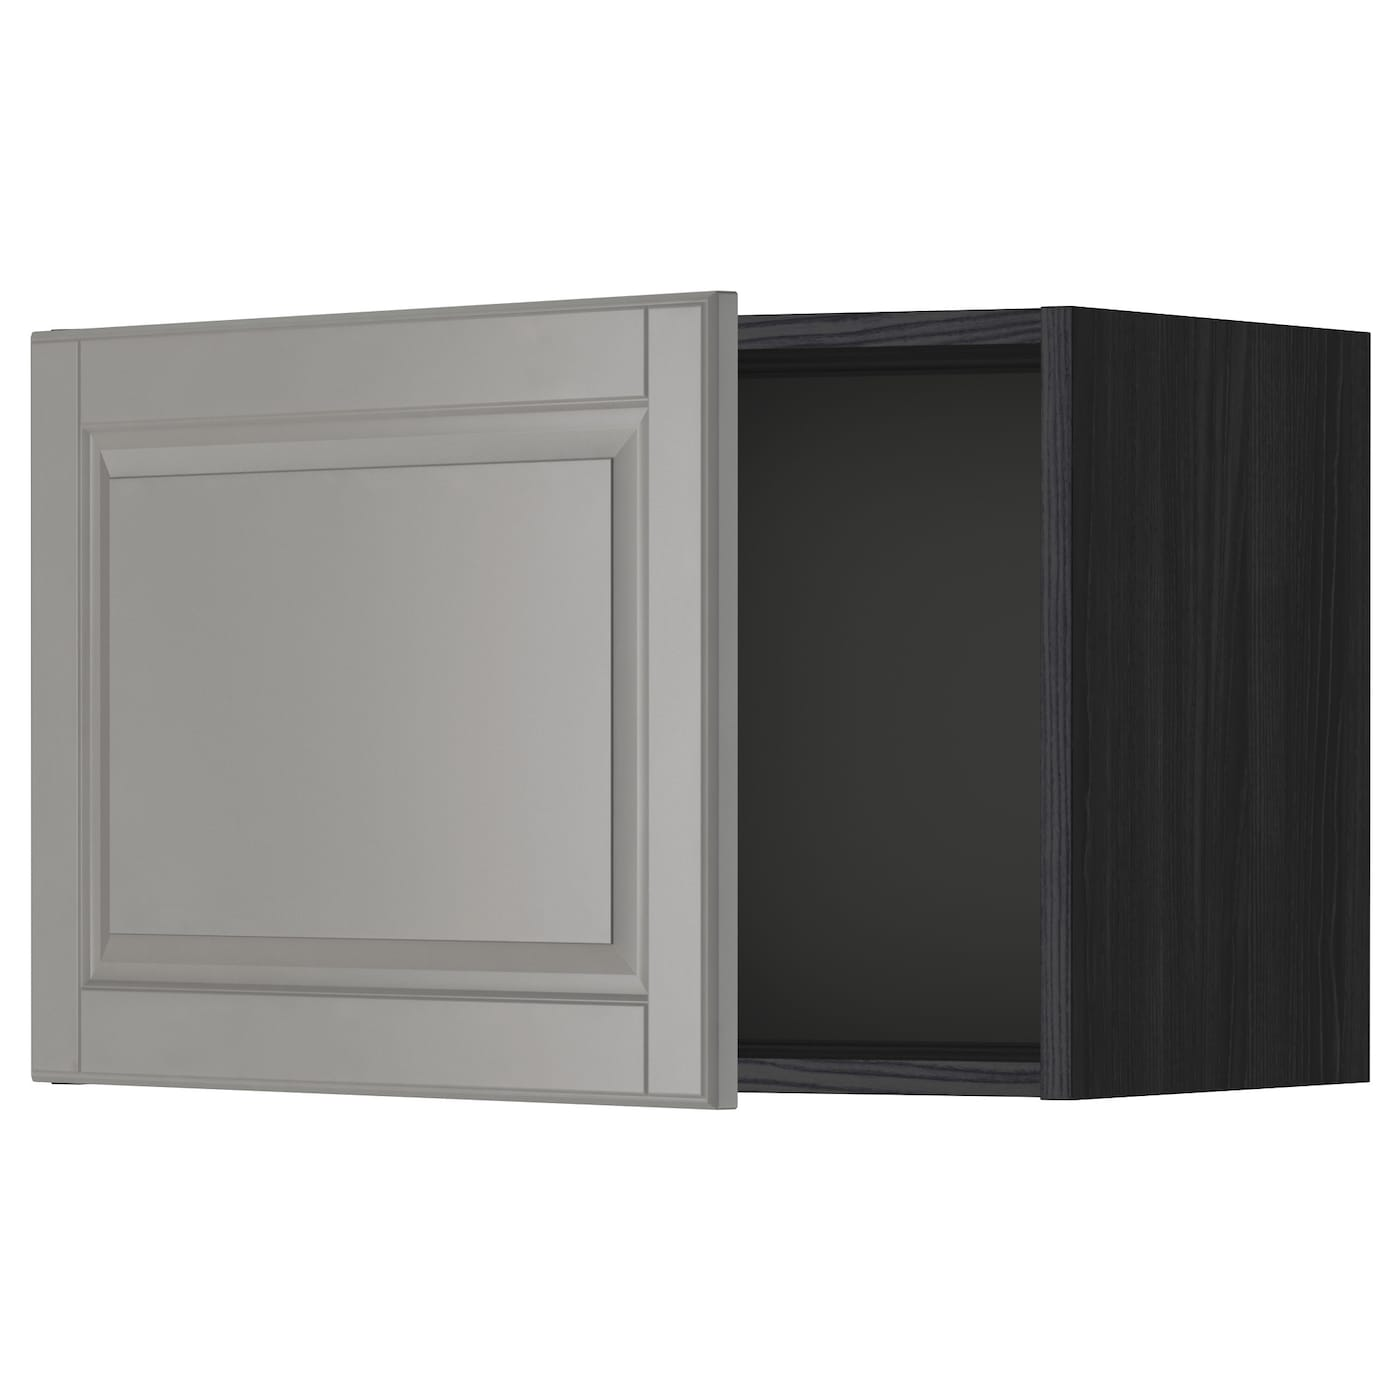 Ikea Kitchen Bodbyn Grey: METOD Wall Cabinet Black/bodbyn Grey 60 X 40 Cm